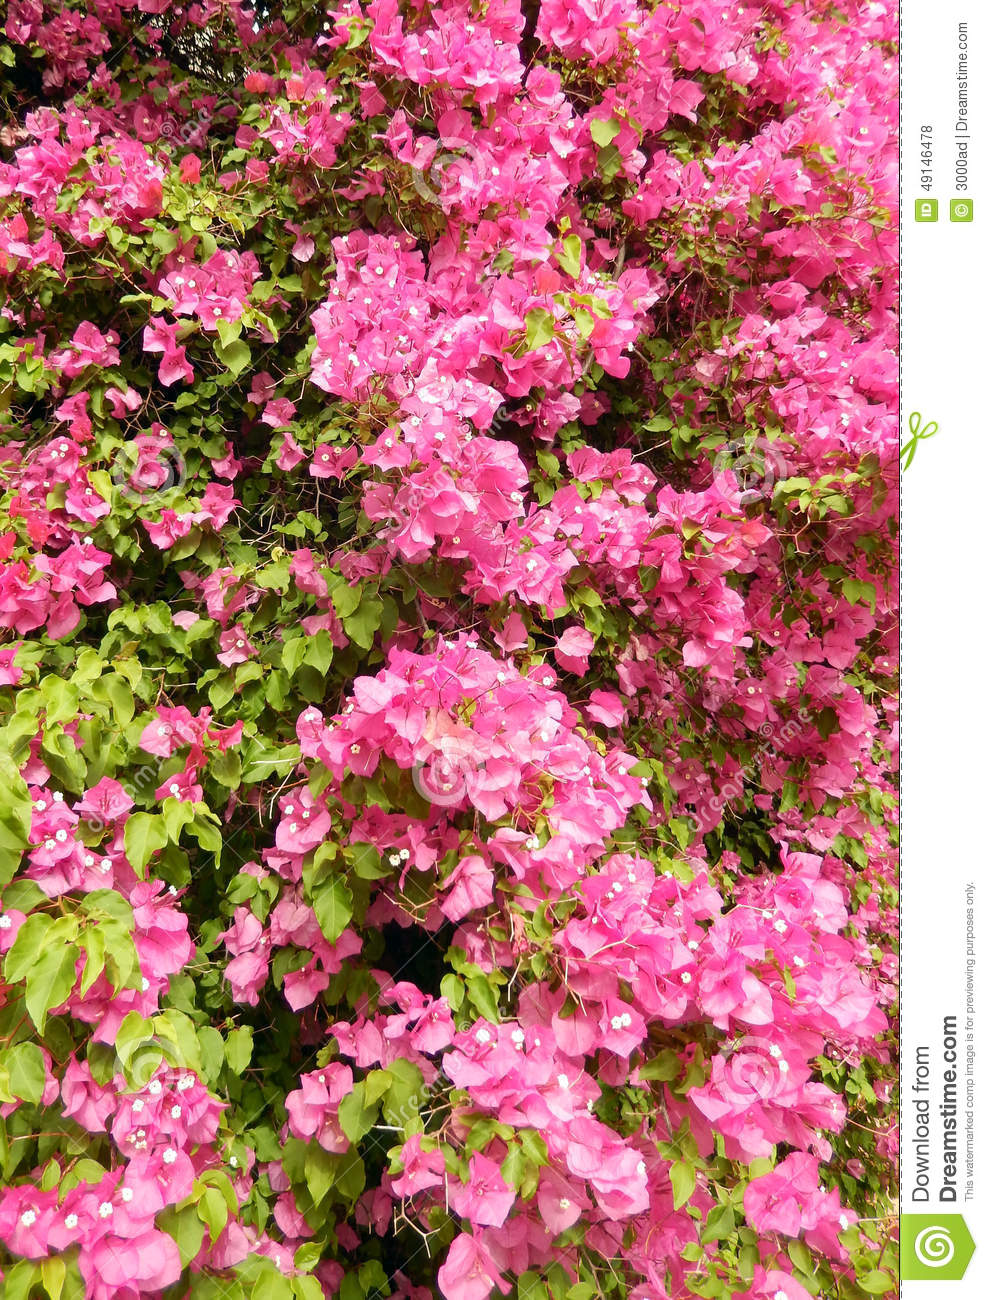 Pink Bougainvillea Bush Stock Photo Image Of Rhododendron 49146478